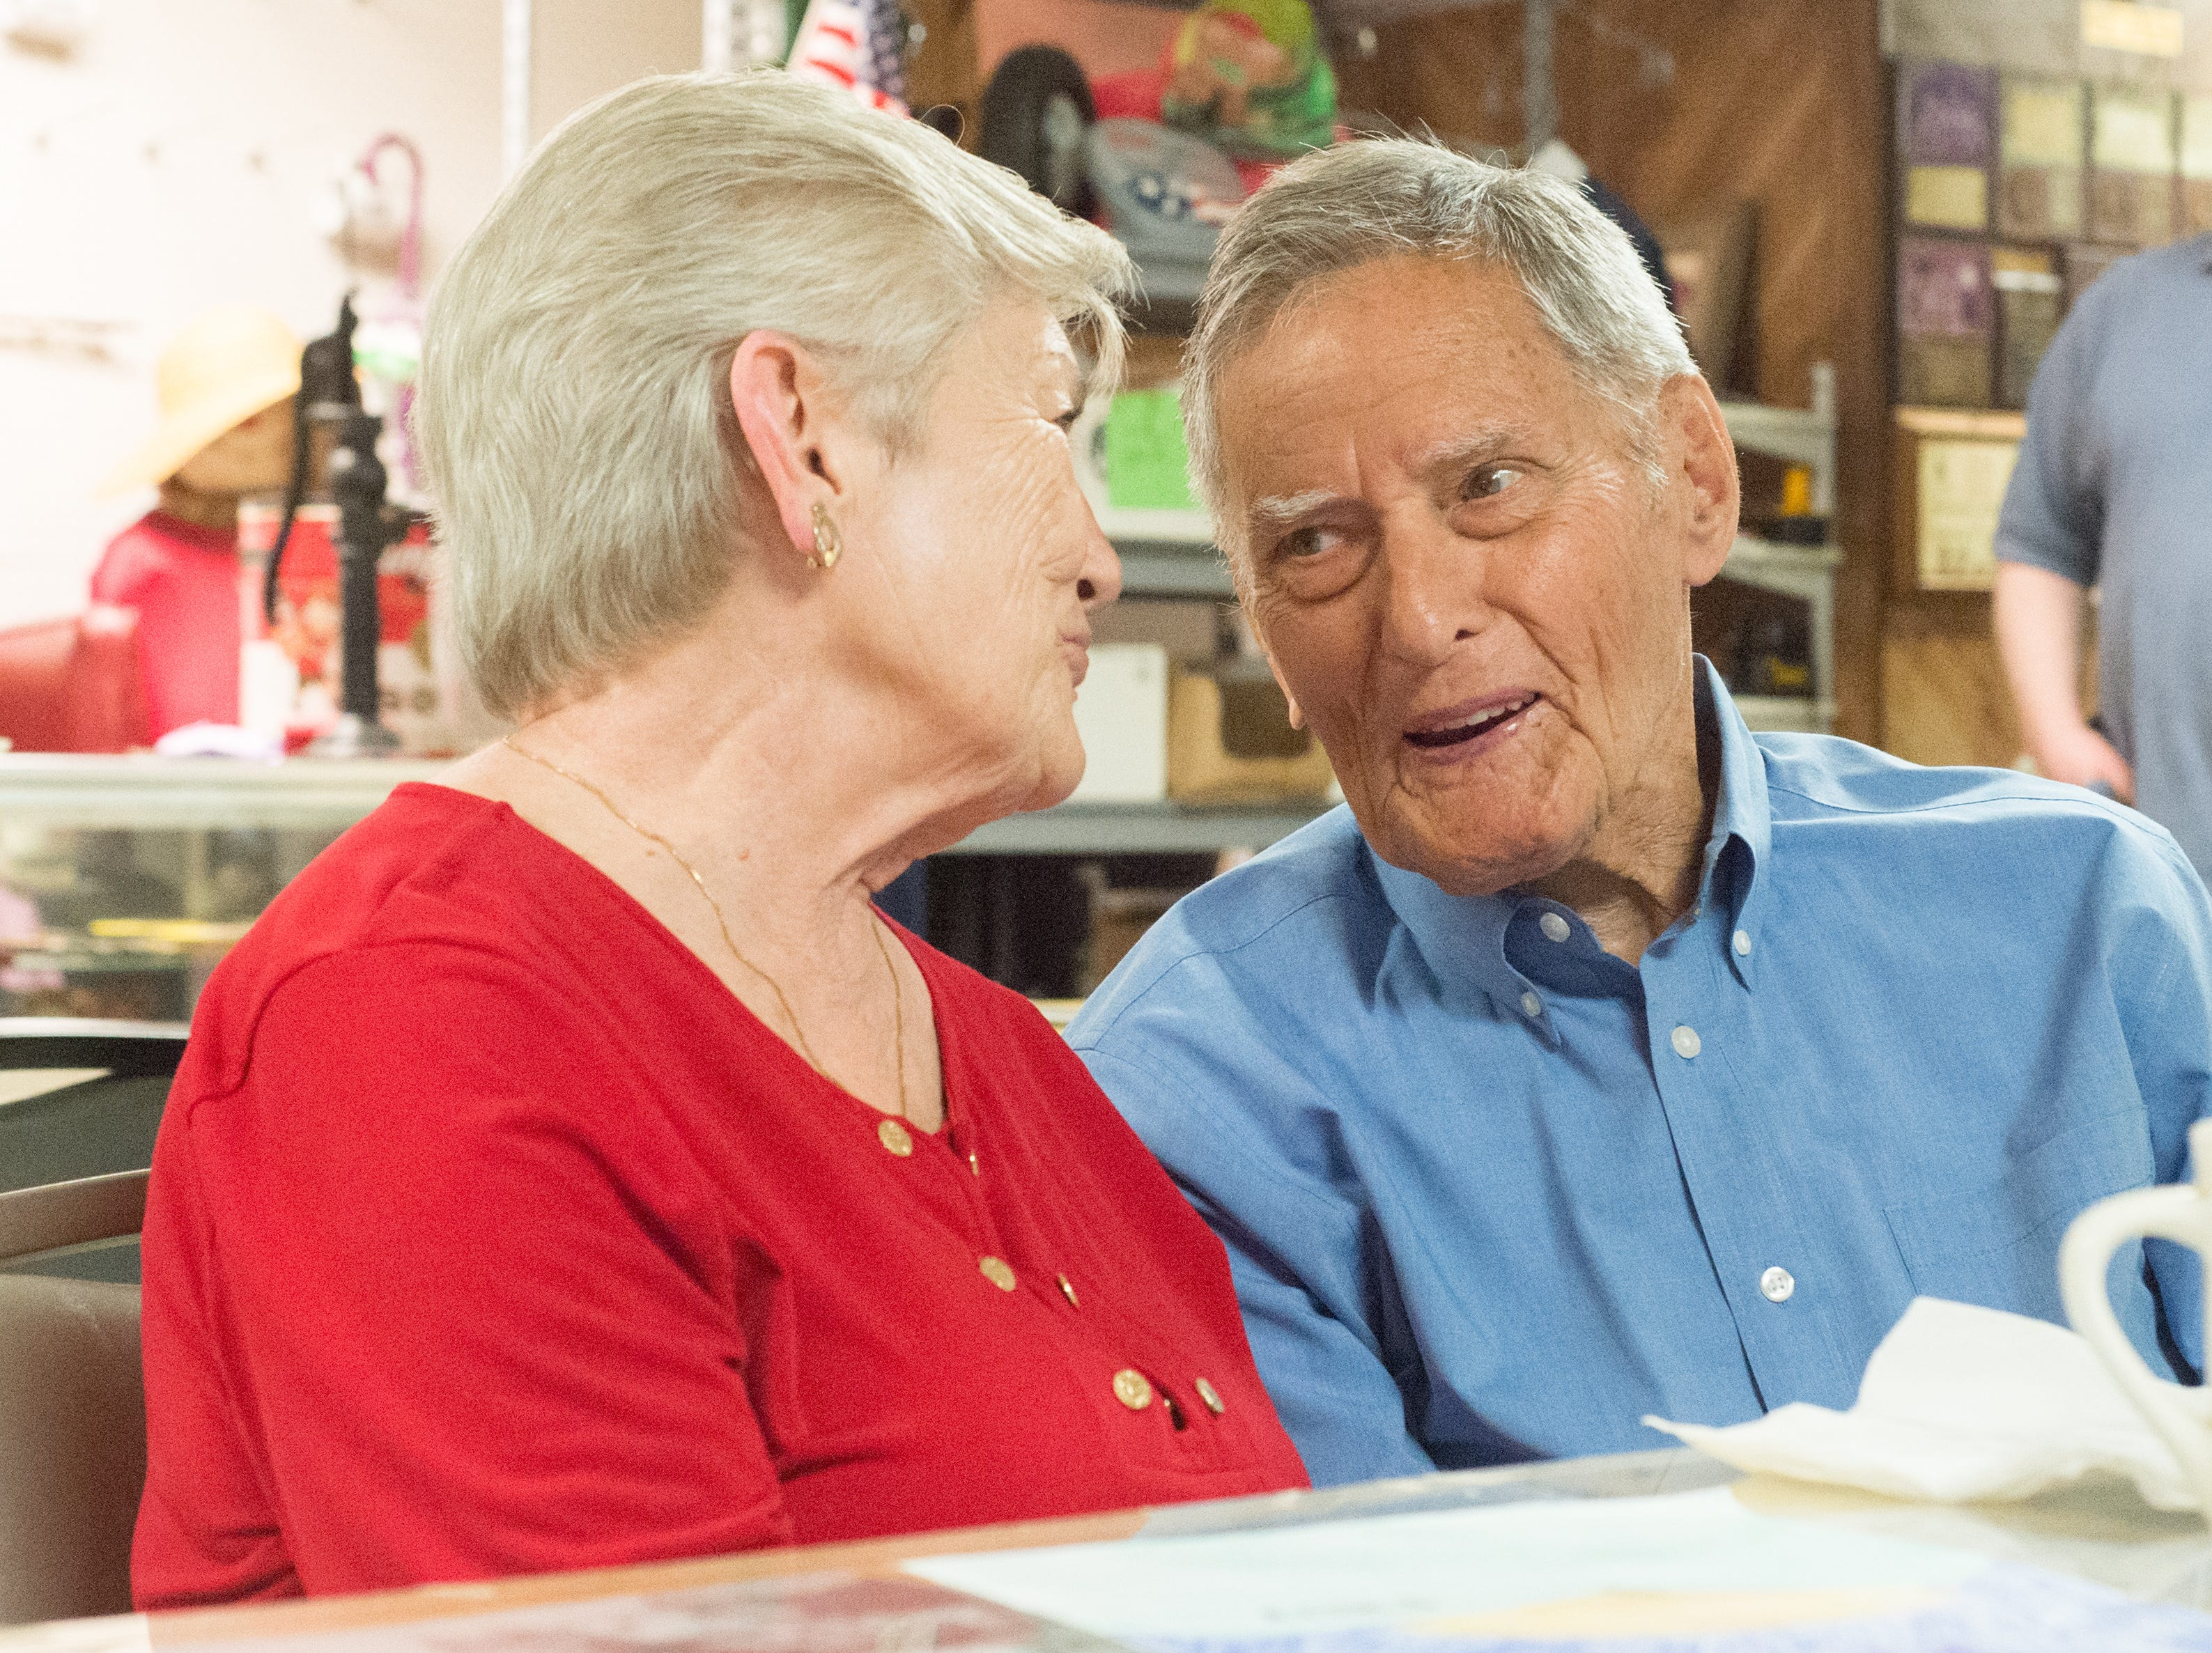 Bobbie Barnes and Willie Martin enjoy a chat at Long Hollow Jamboree in Goodlettsville on Saturday, April 7.